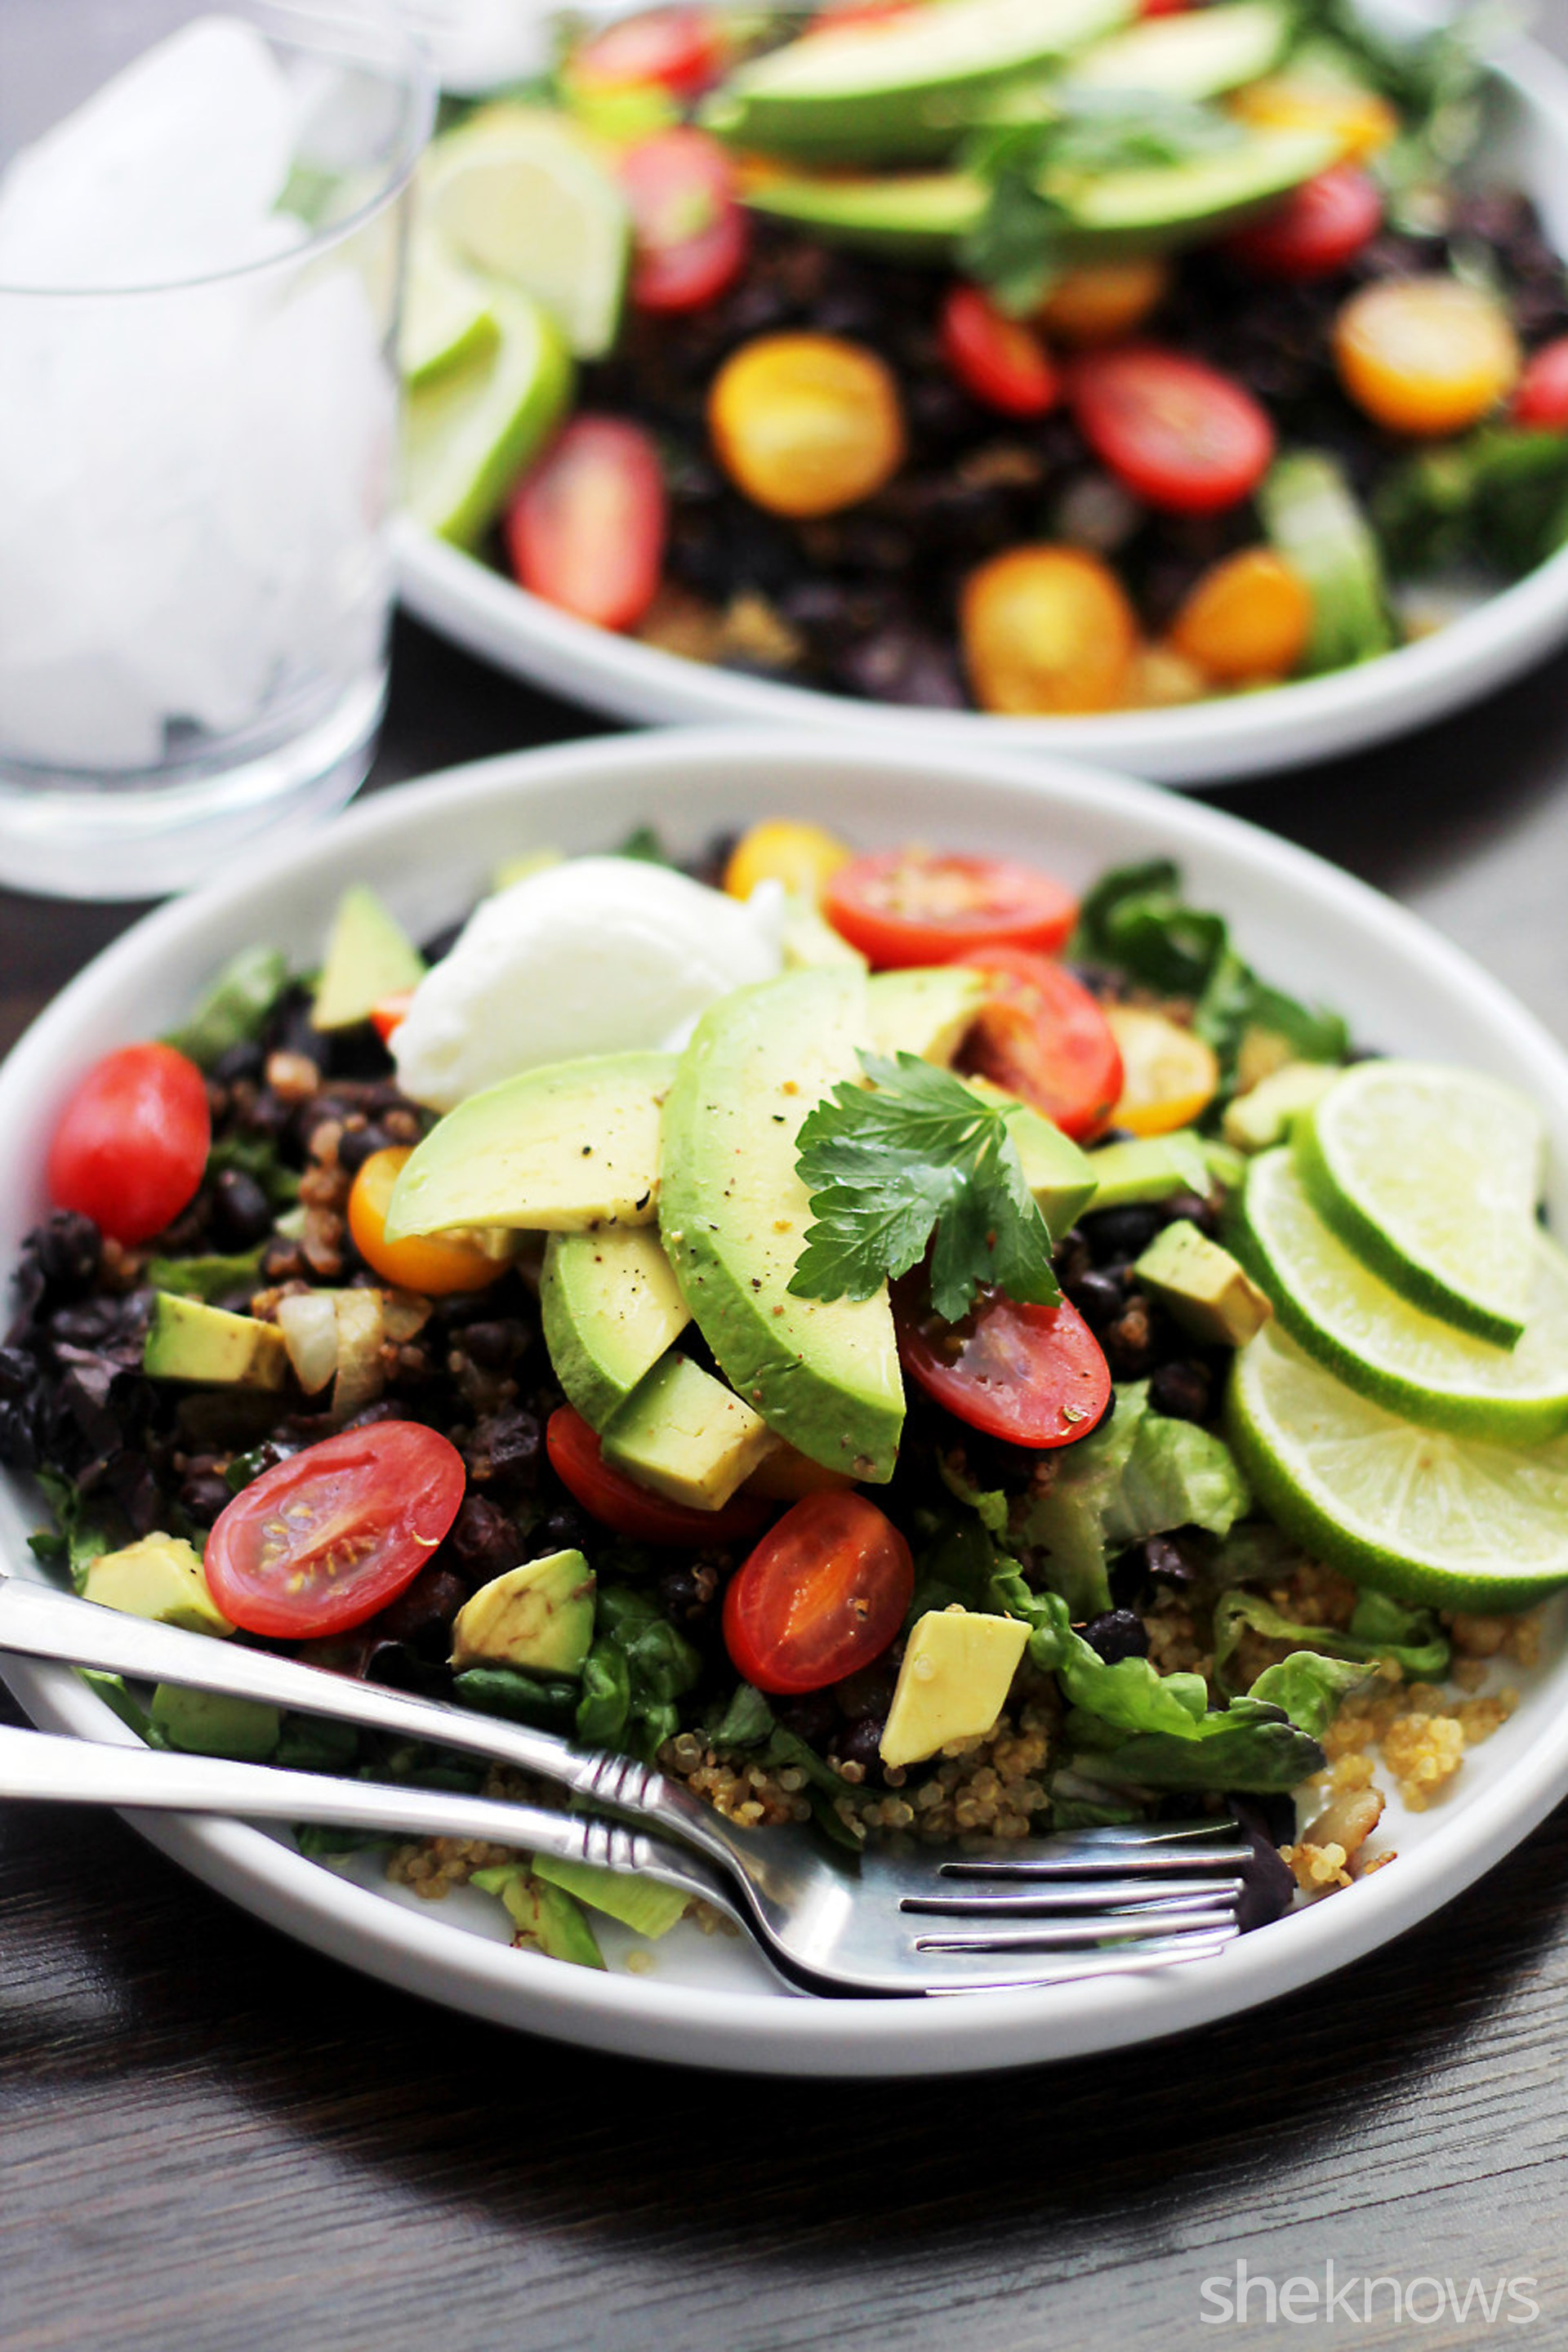 Quinoa burrito bowls for a low-carb take on a fast food favorite